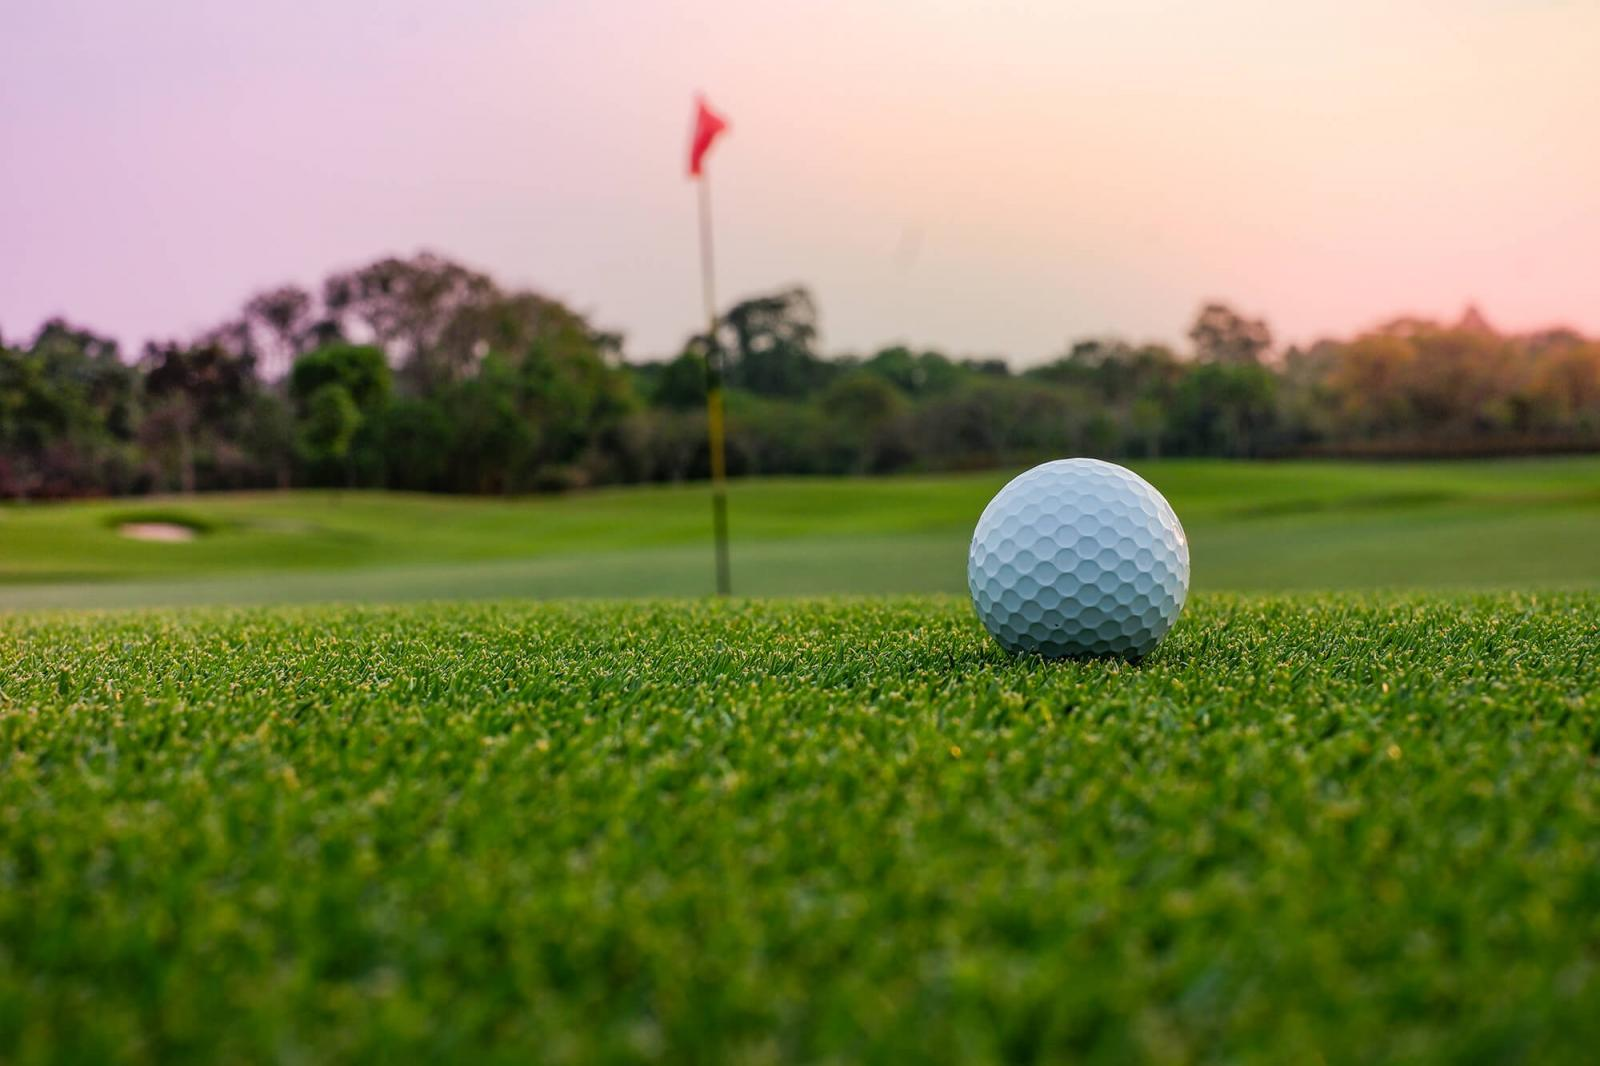 The government also announced golf courses in the province can open May 22.